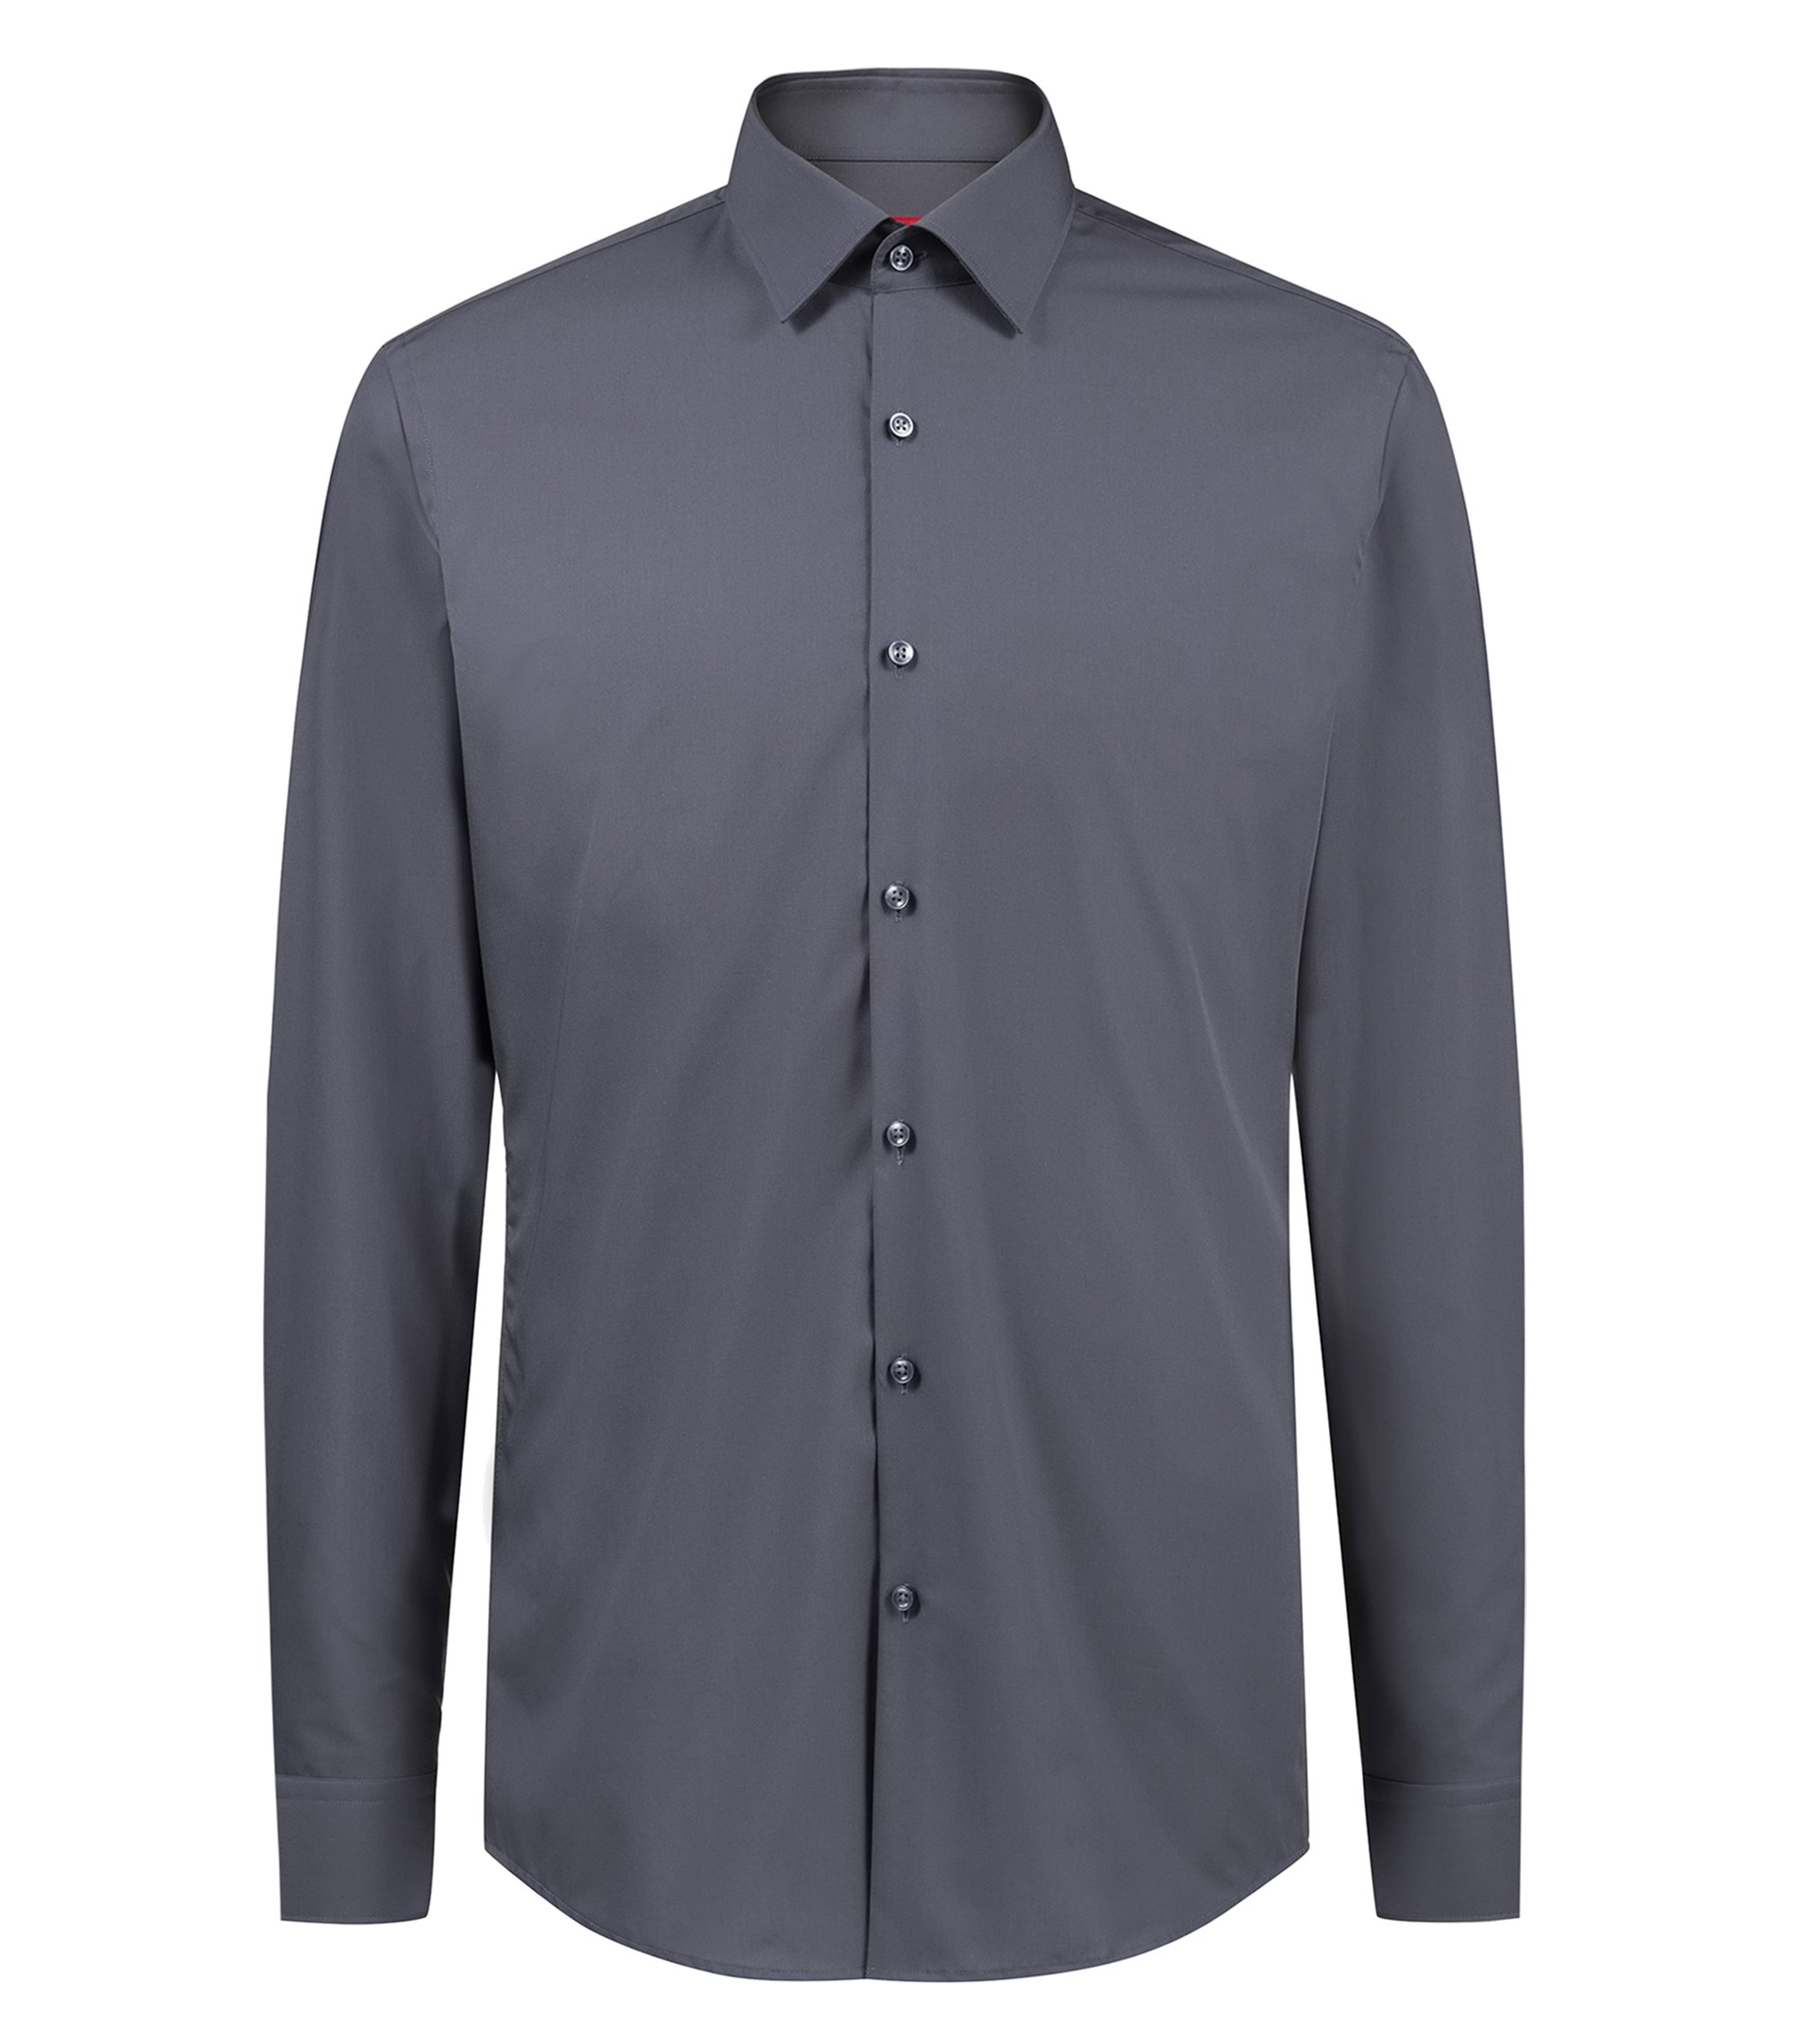 Chemise business Slim Fit en popeline de coton, Gris